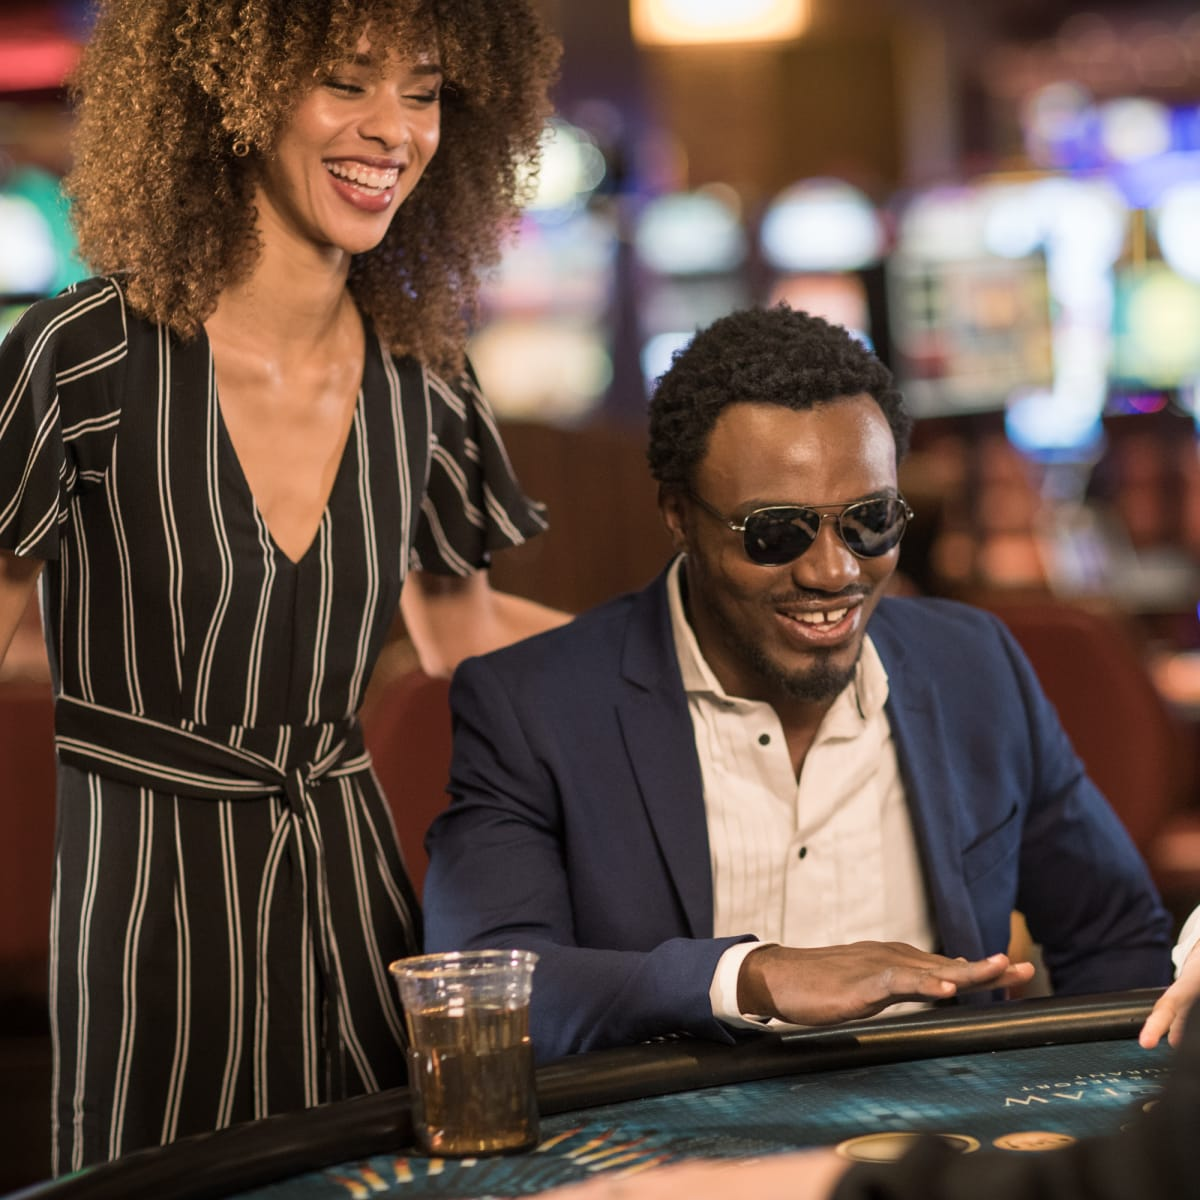 Couple playing at a casino